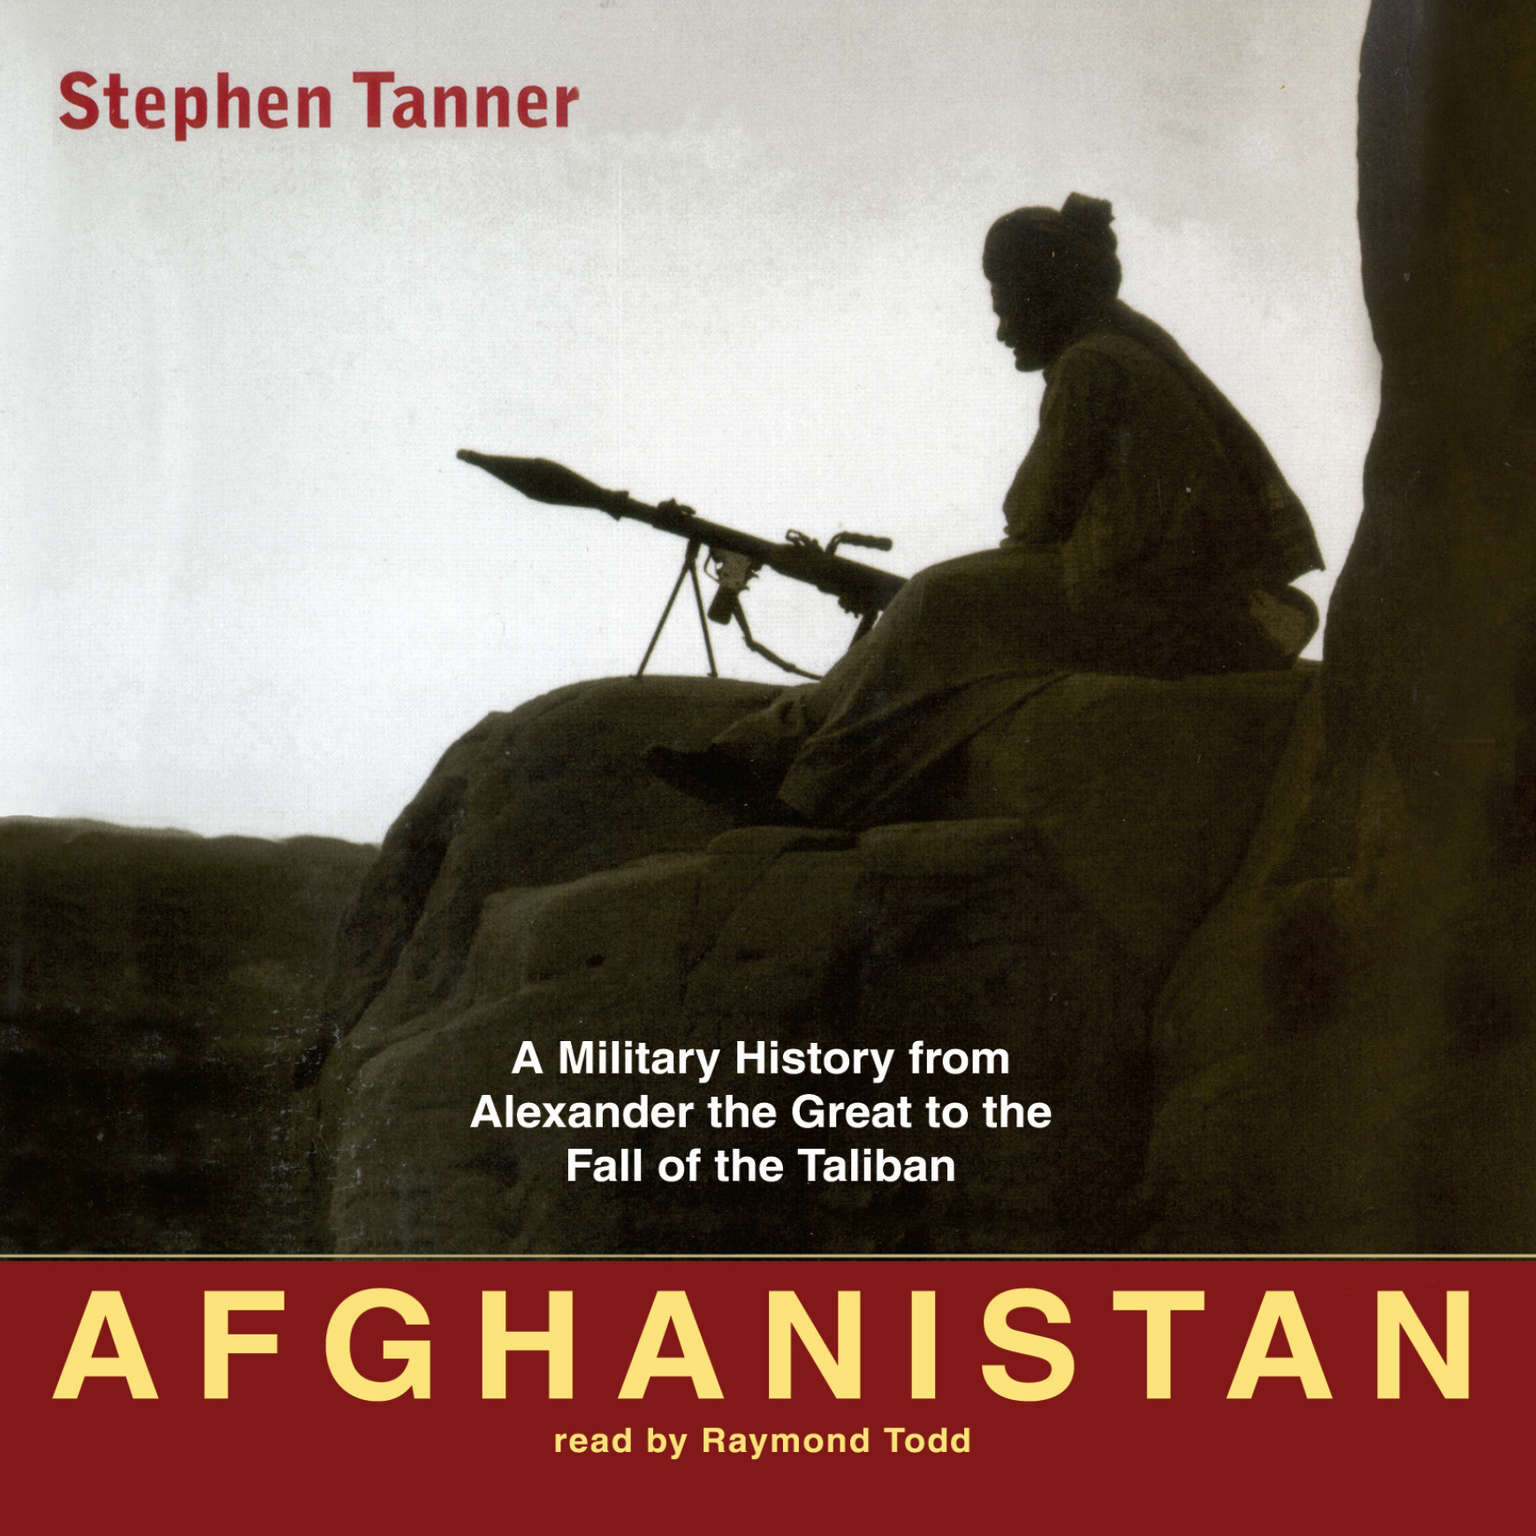 Afghanistan: A Military History from Alexander the Great to the Fall of the Taliban Audiobook, by Stephen Tanner